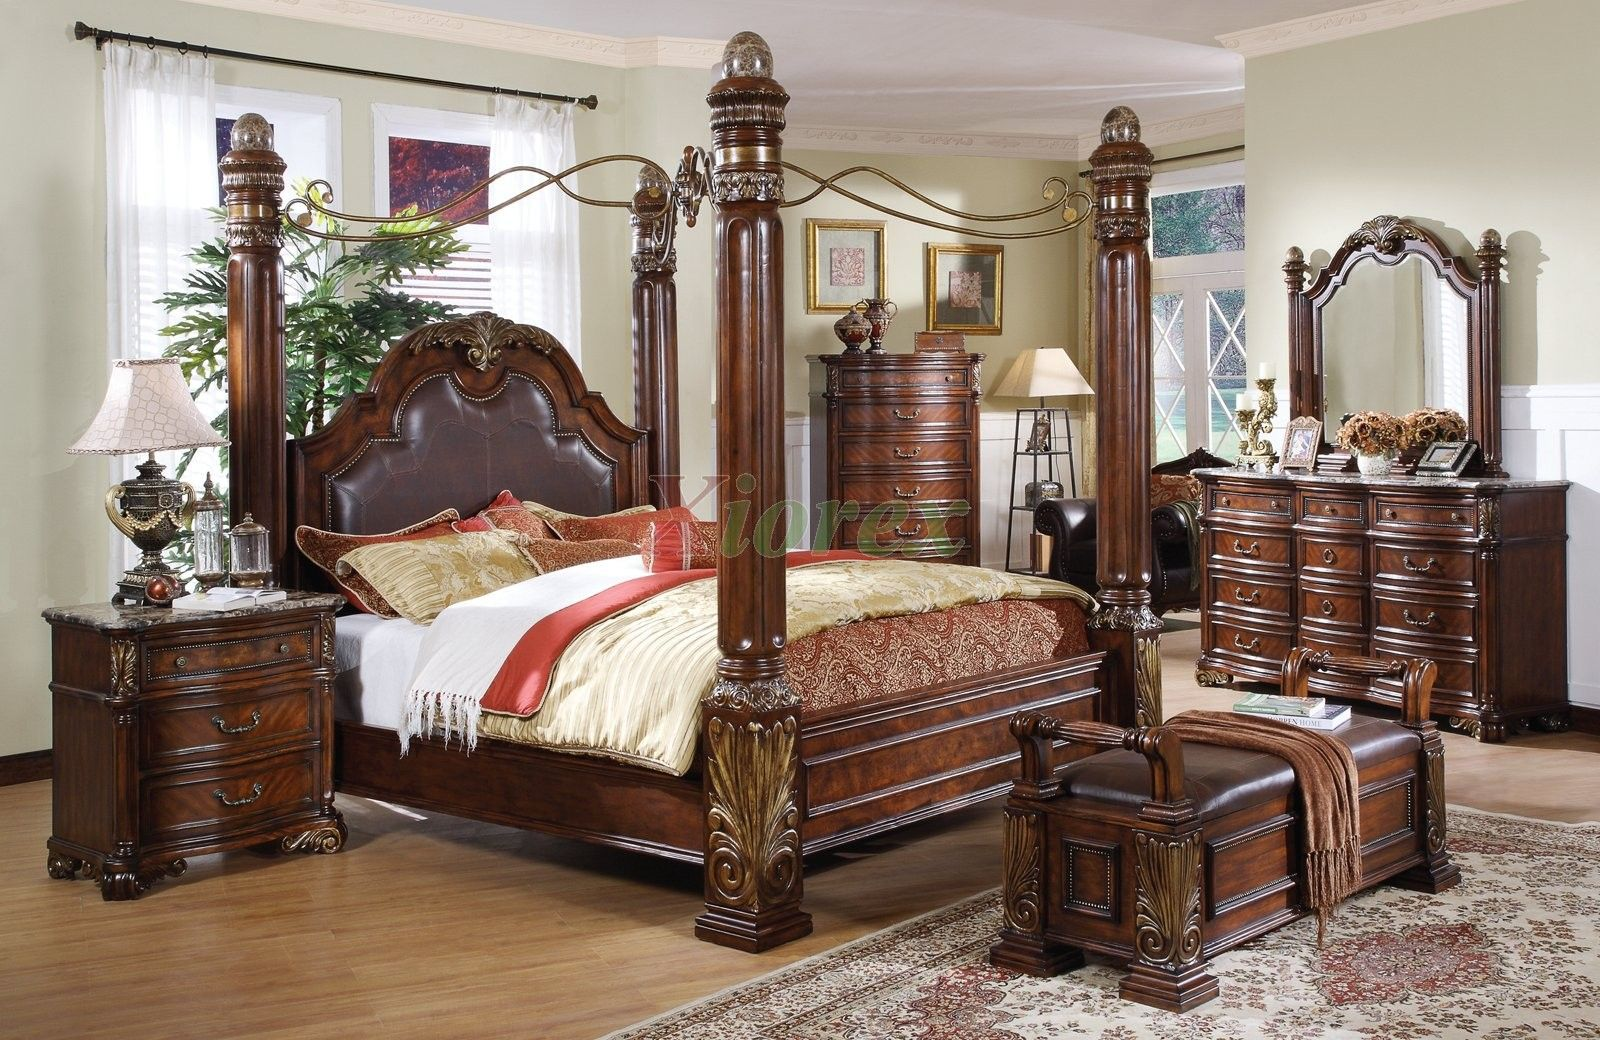 Bedroom Sets With Posts leather headboard post bed with a metal canopy. i like how sturdy